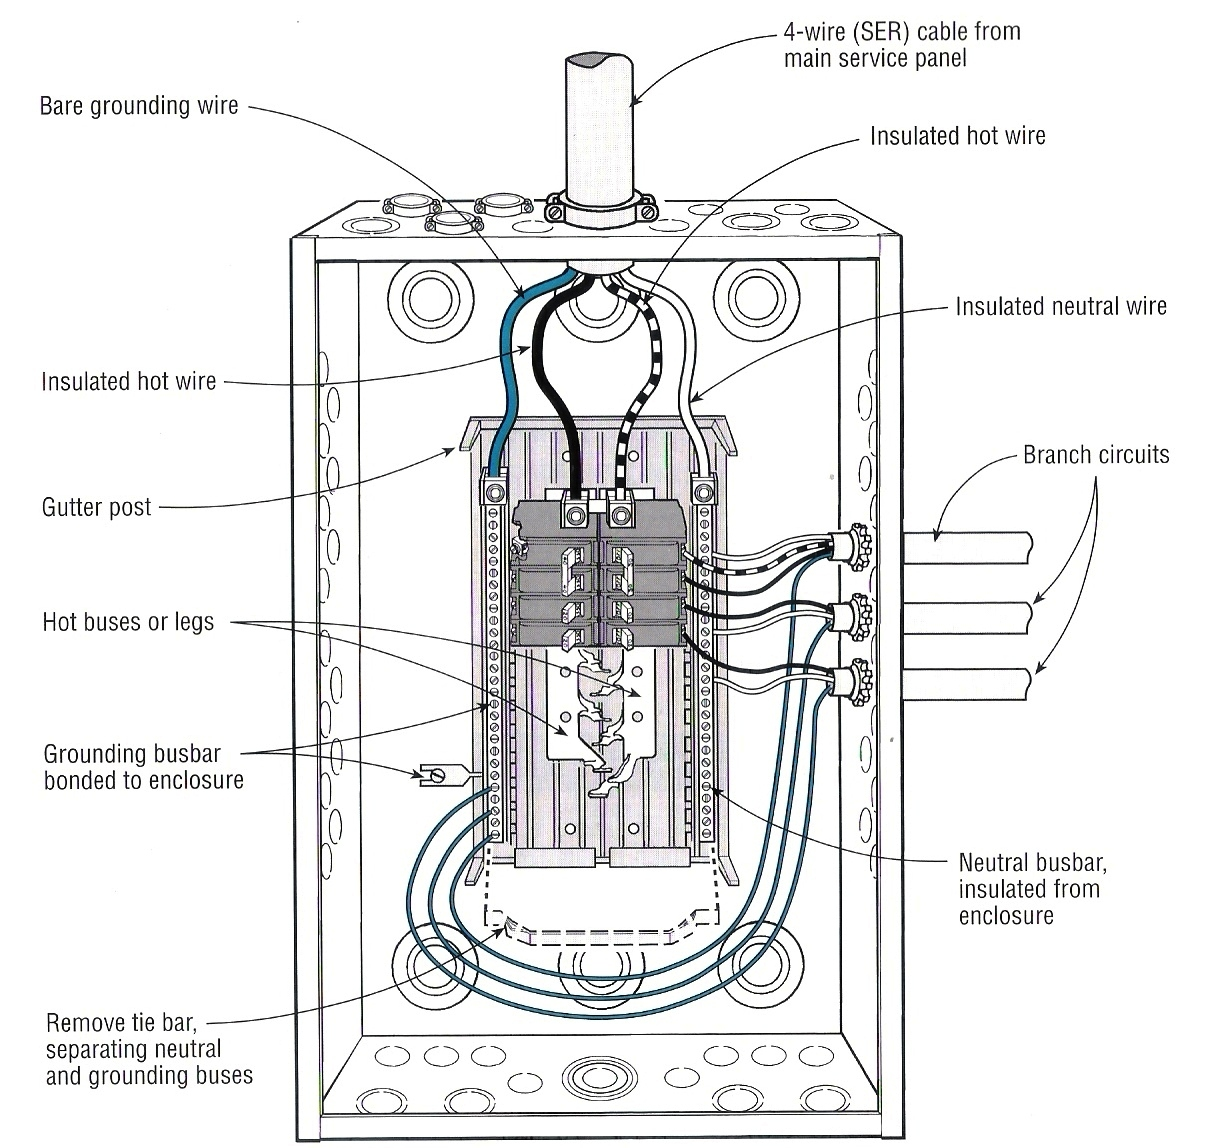 Electrical Wiring Installation : Phc facility management electricity definition units